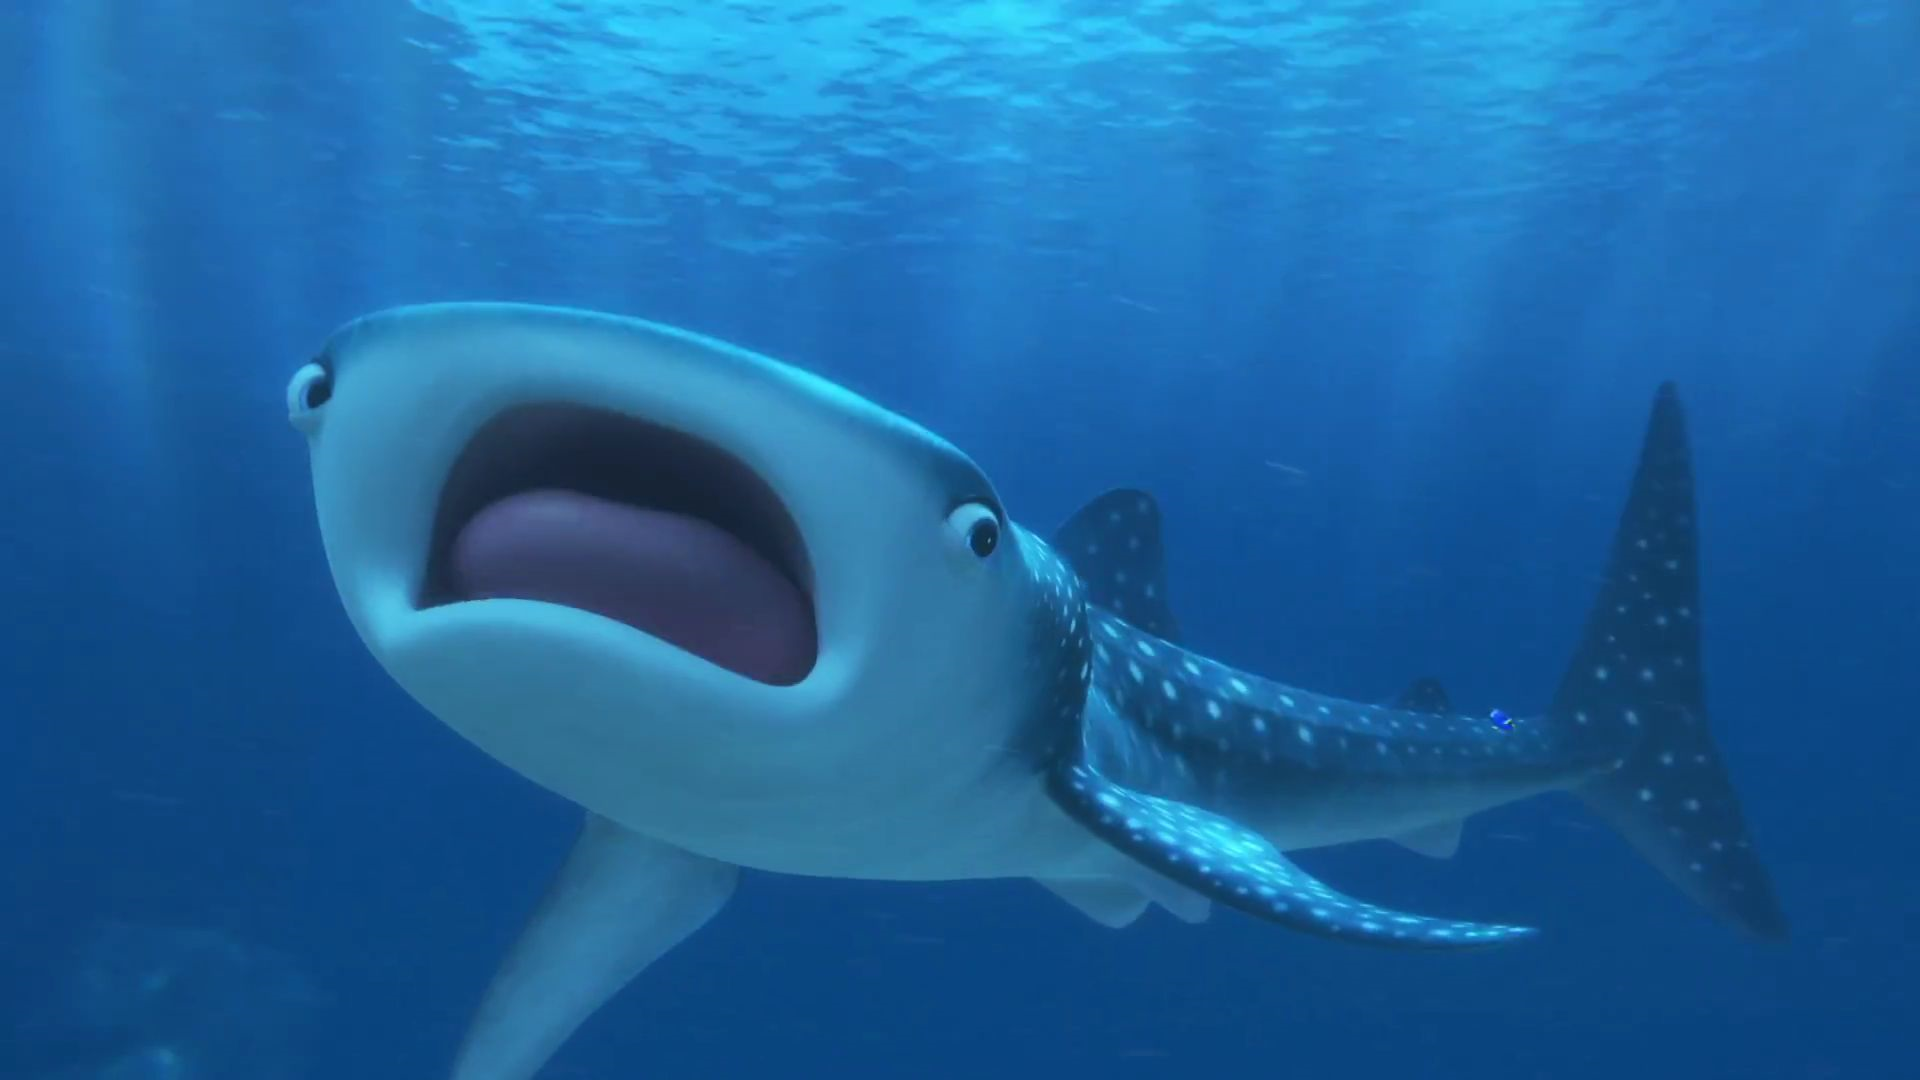 Image Finding Dory 72 Png Disney Wiki Fandom Powered